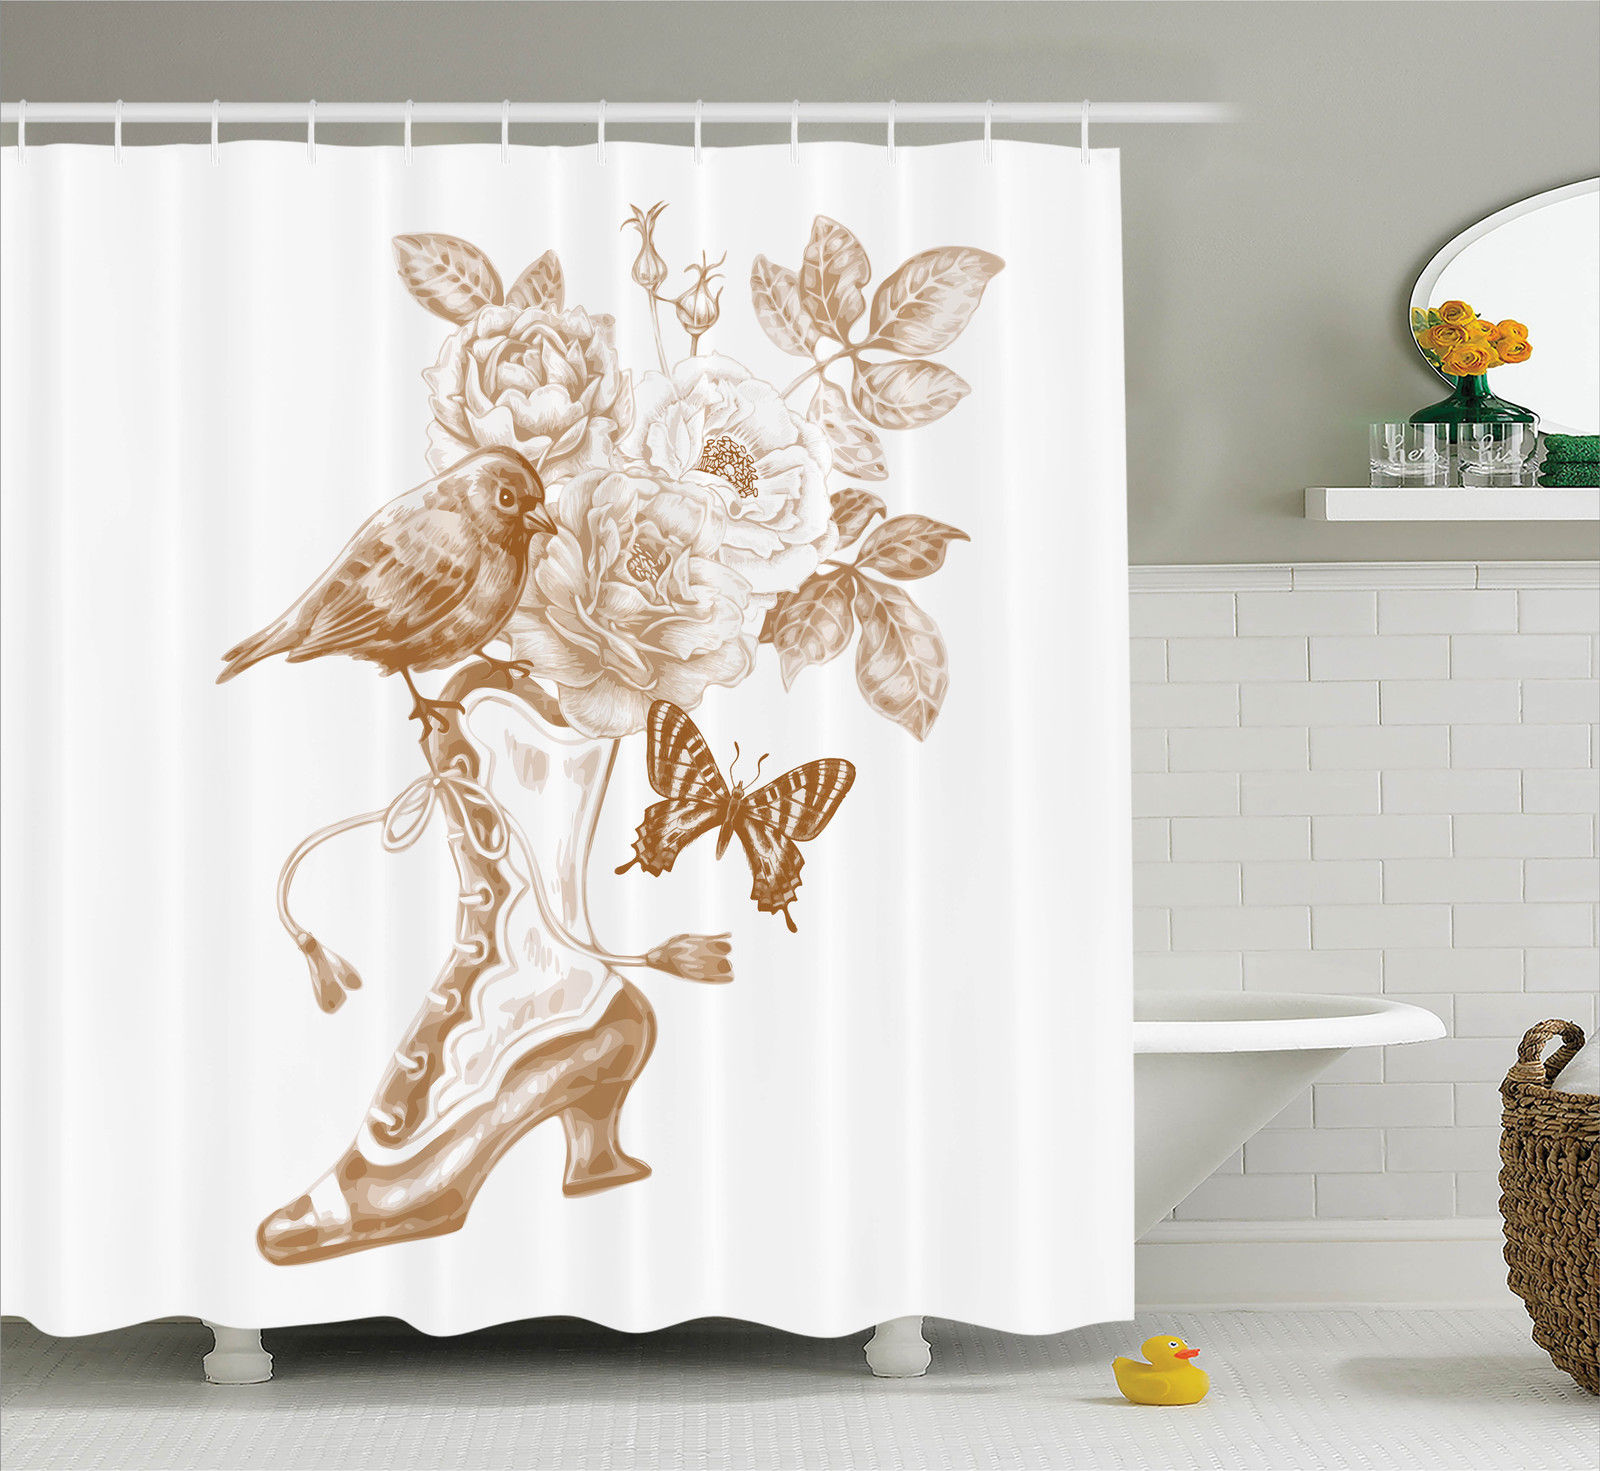 Ordinaire Victorian Decor Shower Curtain Set, Nostalgic Boots With Roses Butterfly  And Bird British Trend Upper